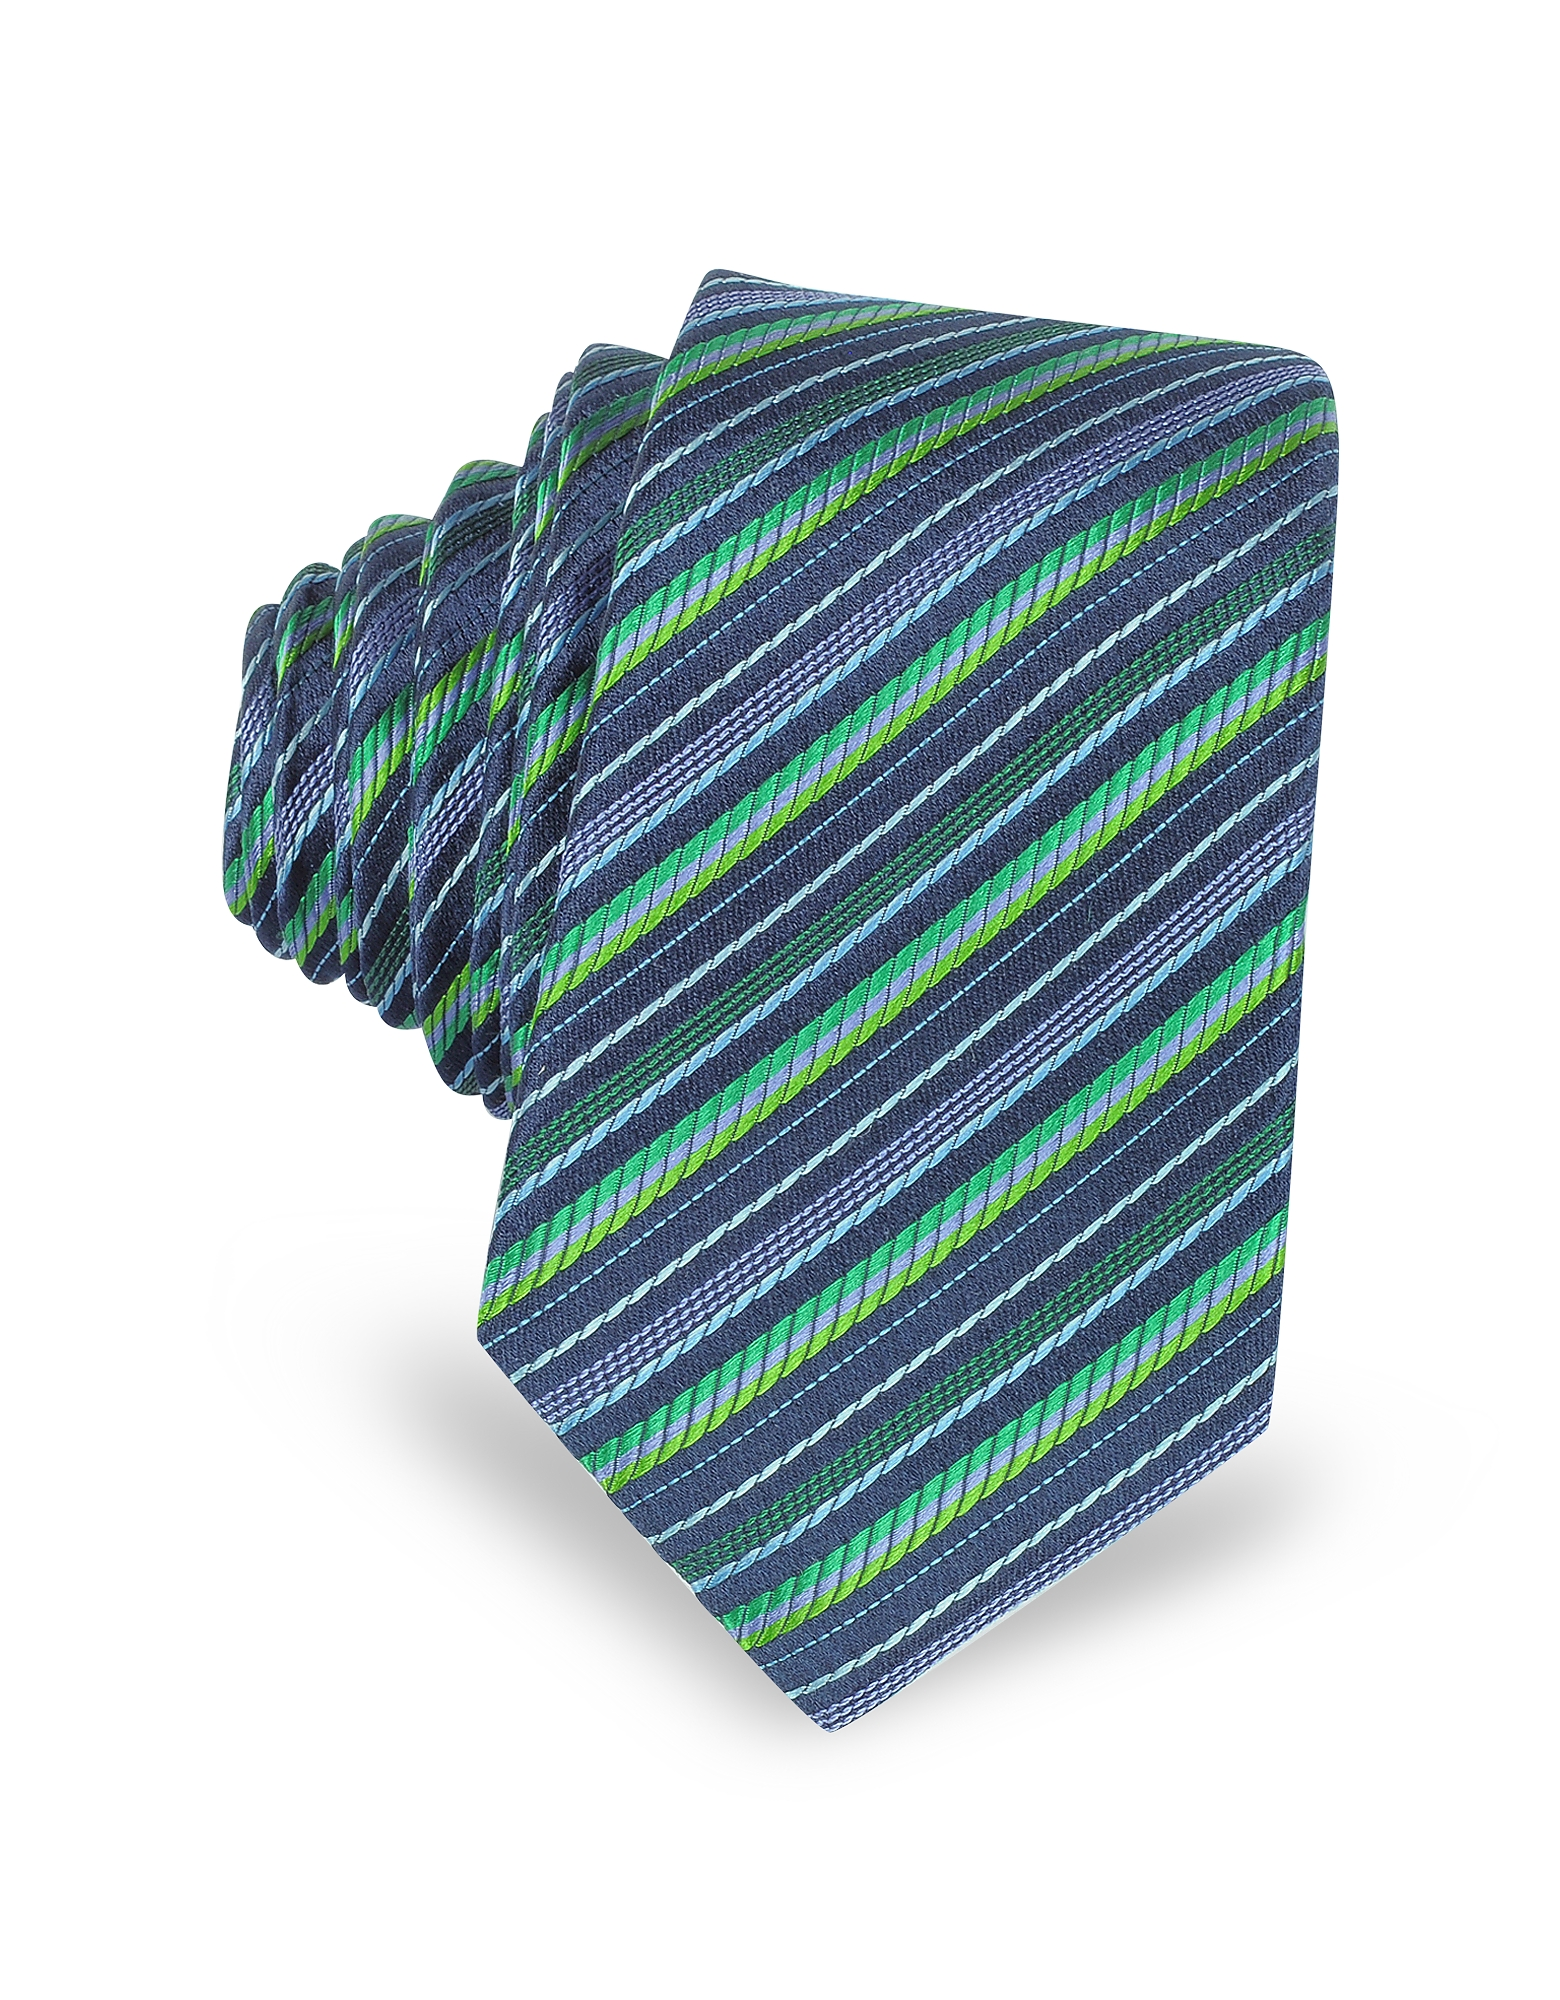 Laura Biagiotti Ascot ties, Navy Blue and Green Diagonal Stripe Woven Silk Extra-Narrow Tie